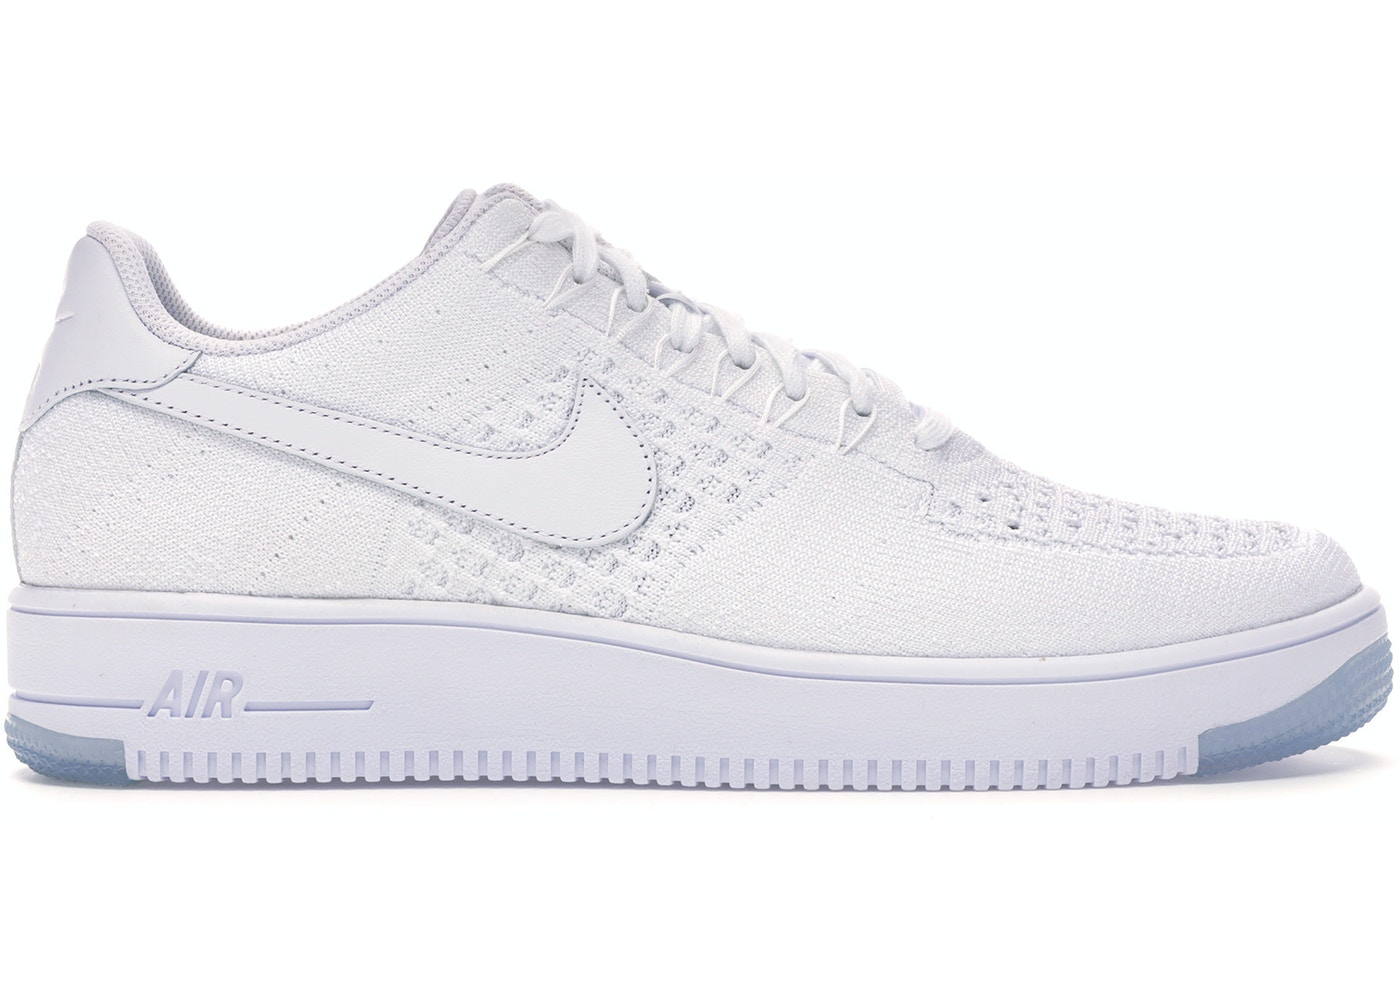 new style best value incredible prices Nike Af1 Ultra Flyknit Low White/White-Ice - 817419-100